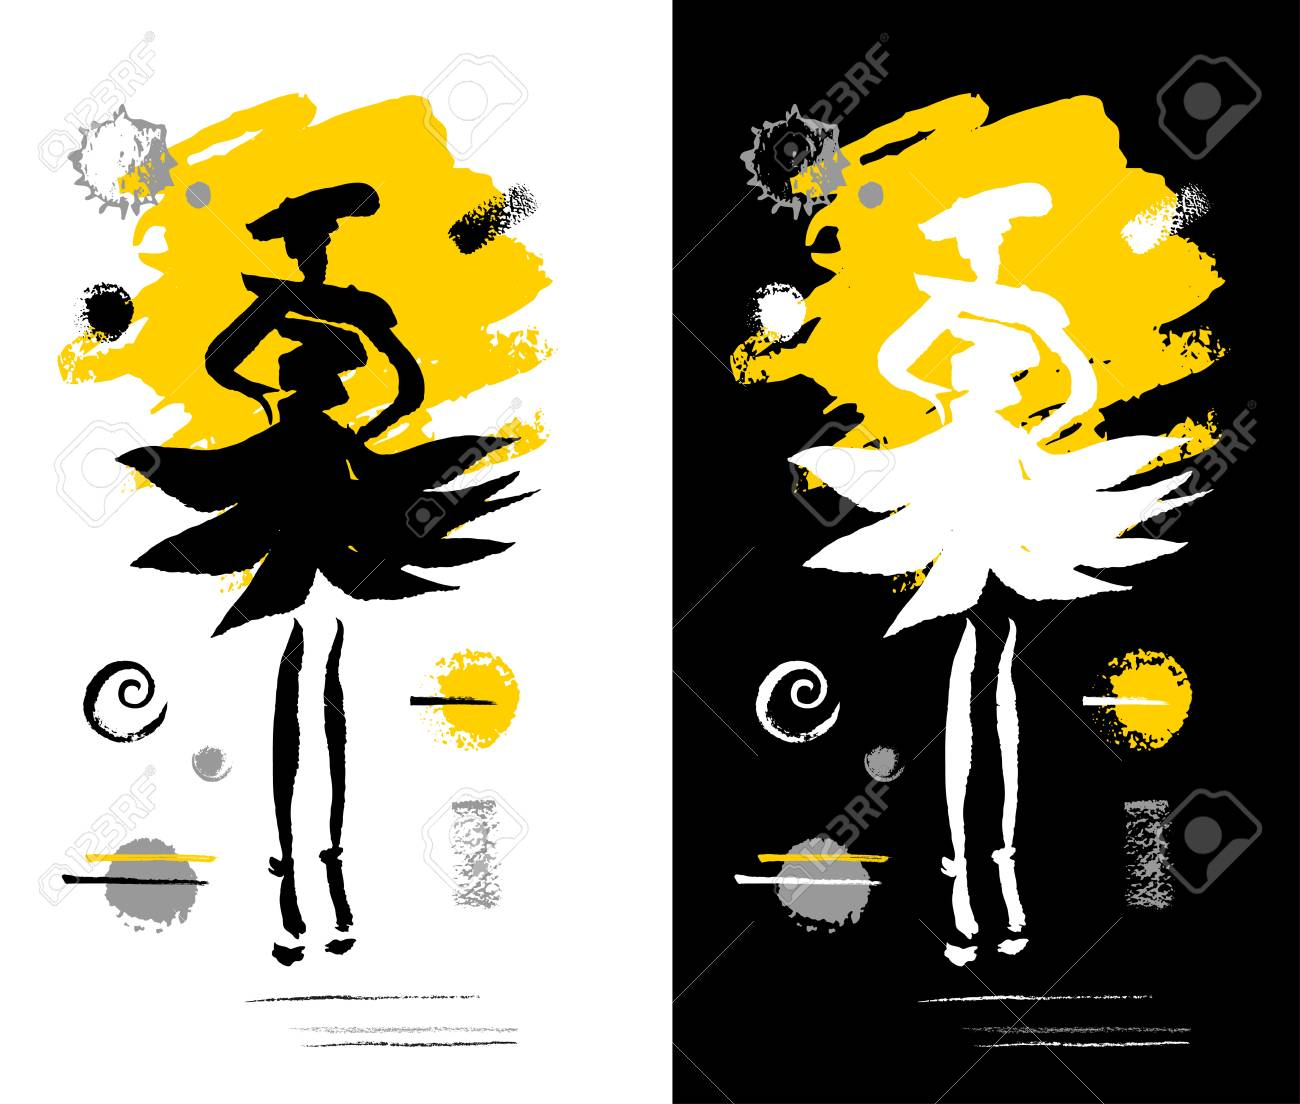 719f584eff9d Fashion poster trendy art design. Yellow black white grunge, ink, paint,  brushstrokes